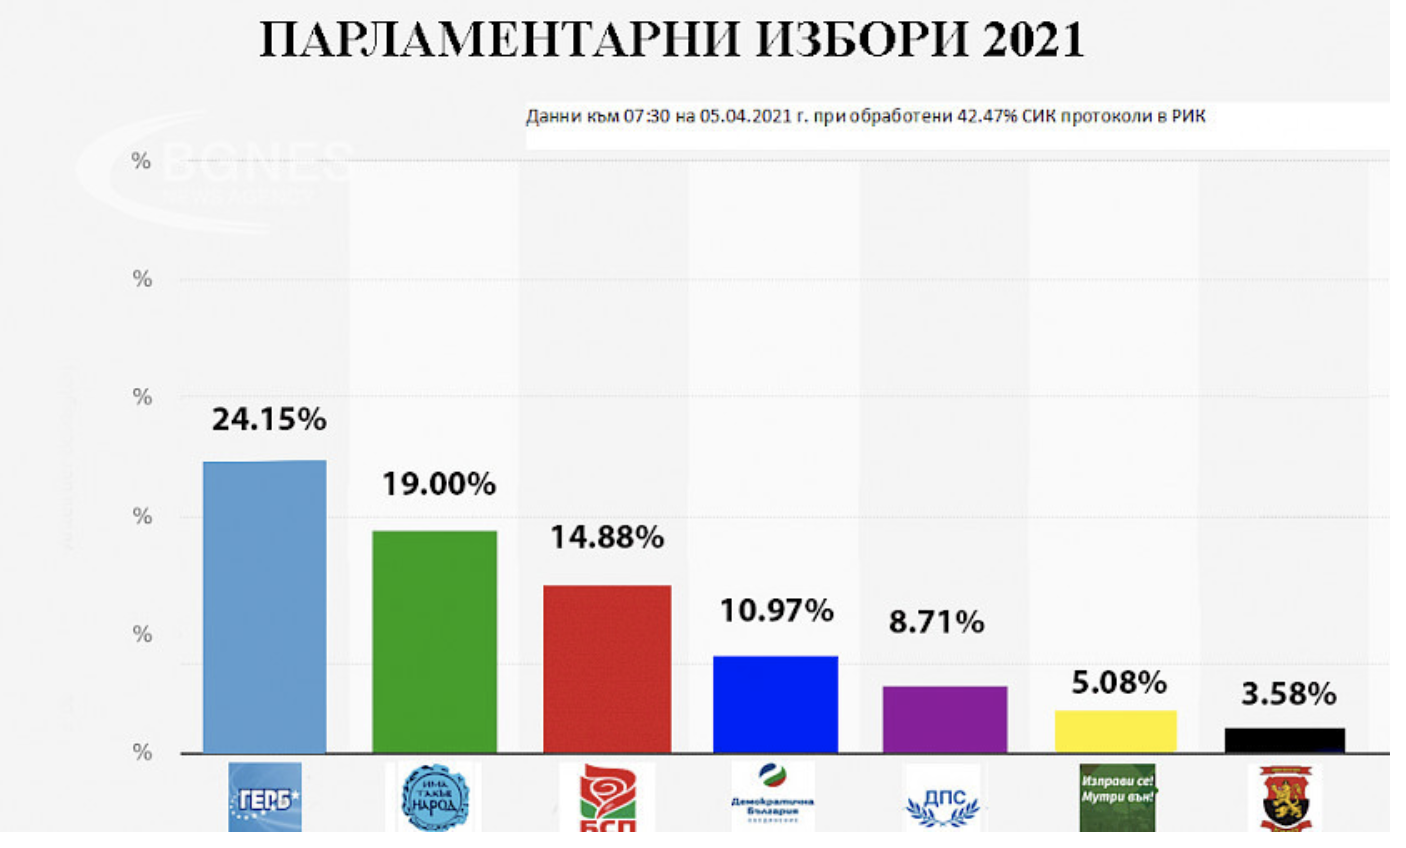 Bulgaria: Six parties gain parliamentary representation with 42.47% of the vote counted